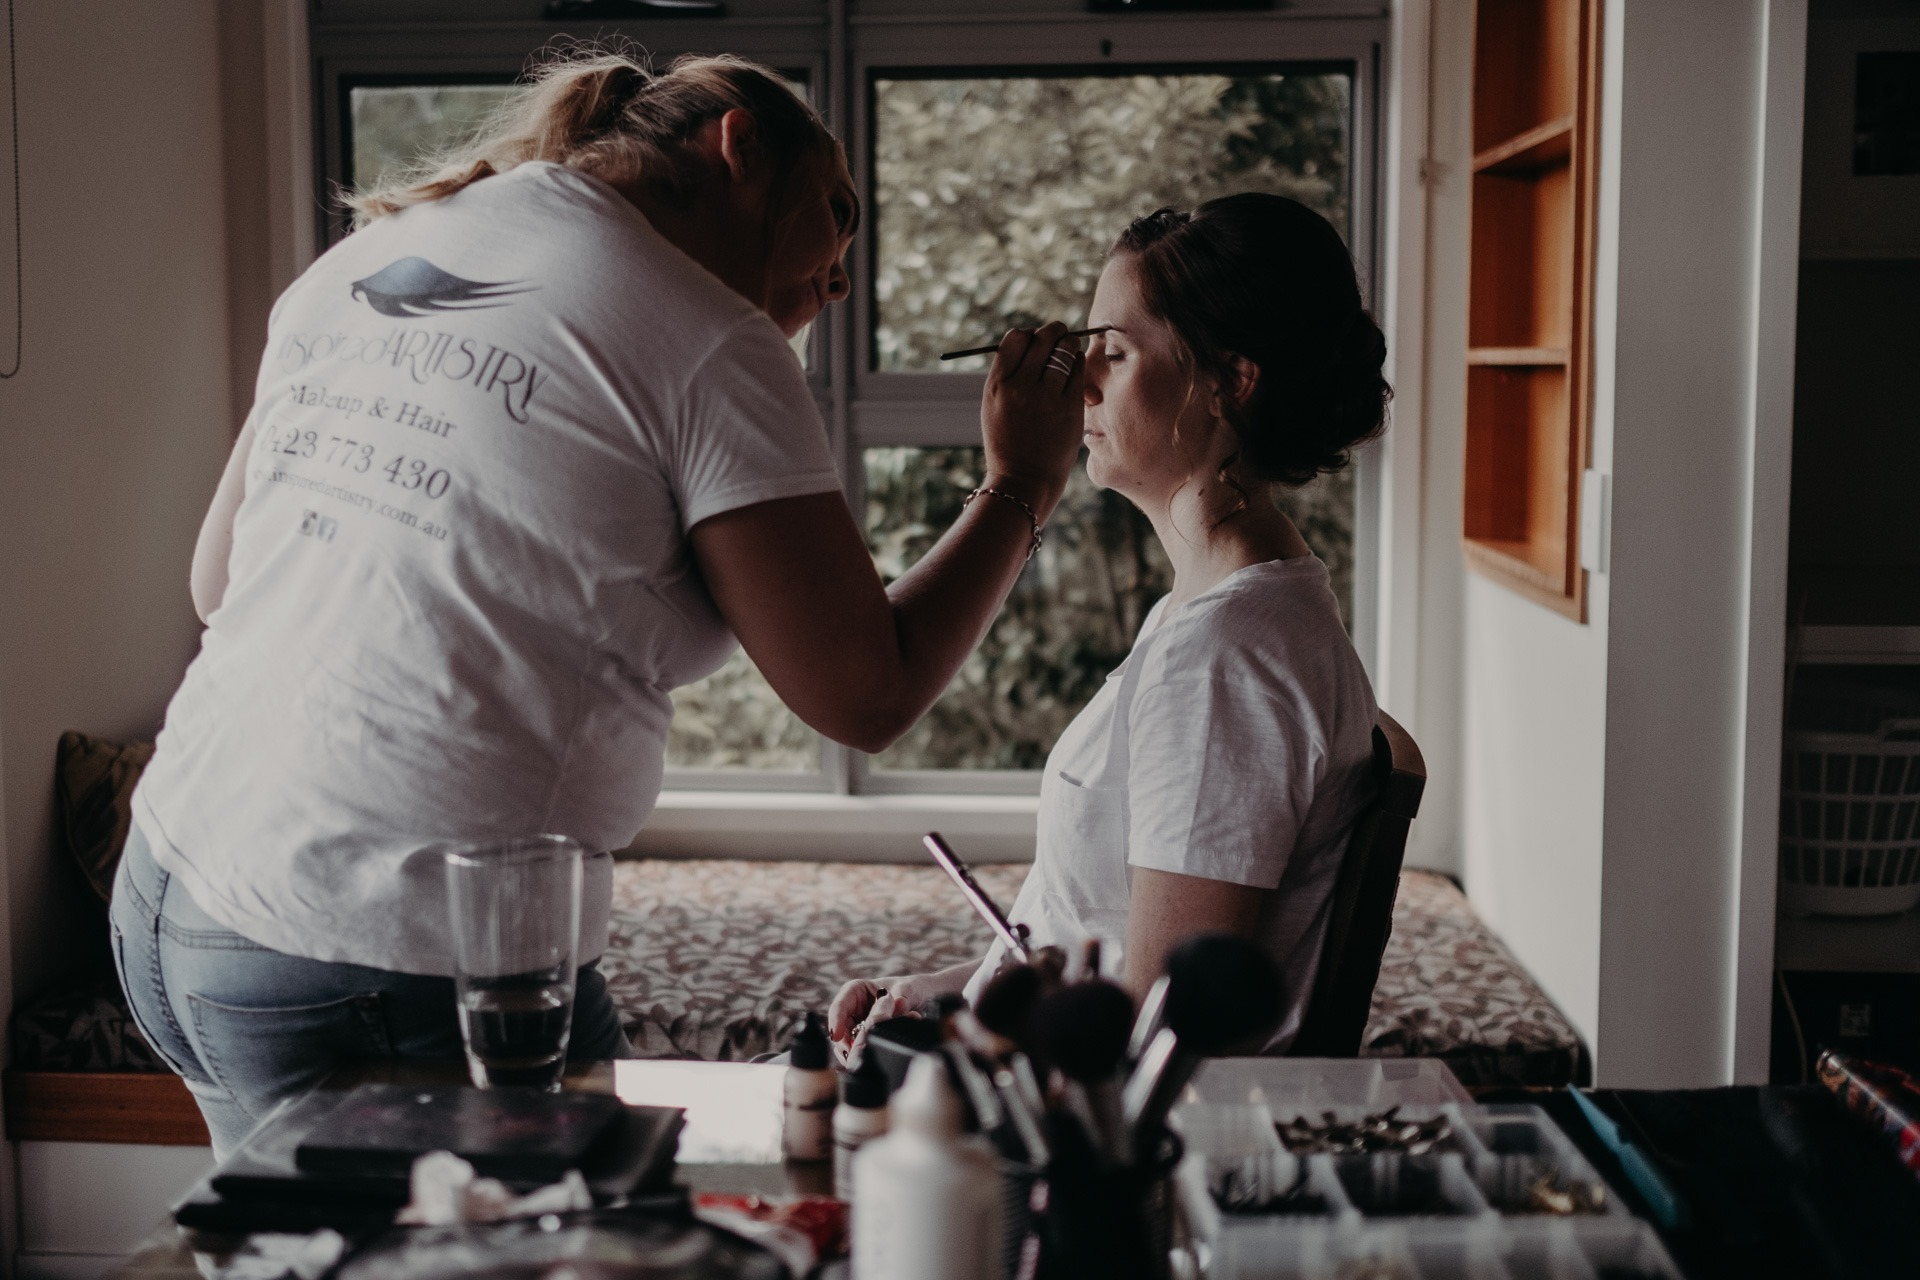 bride getting ready makeup